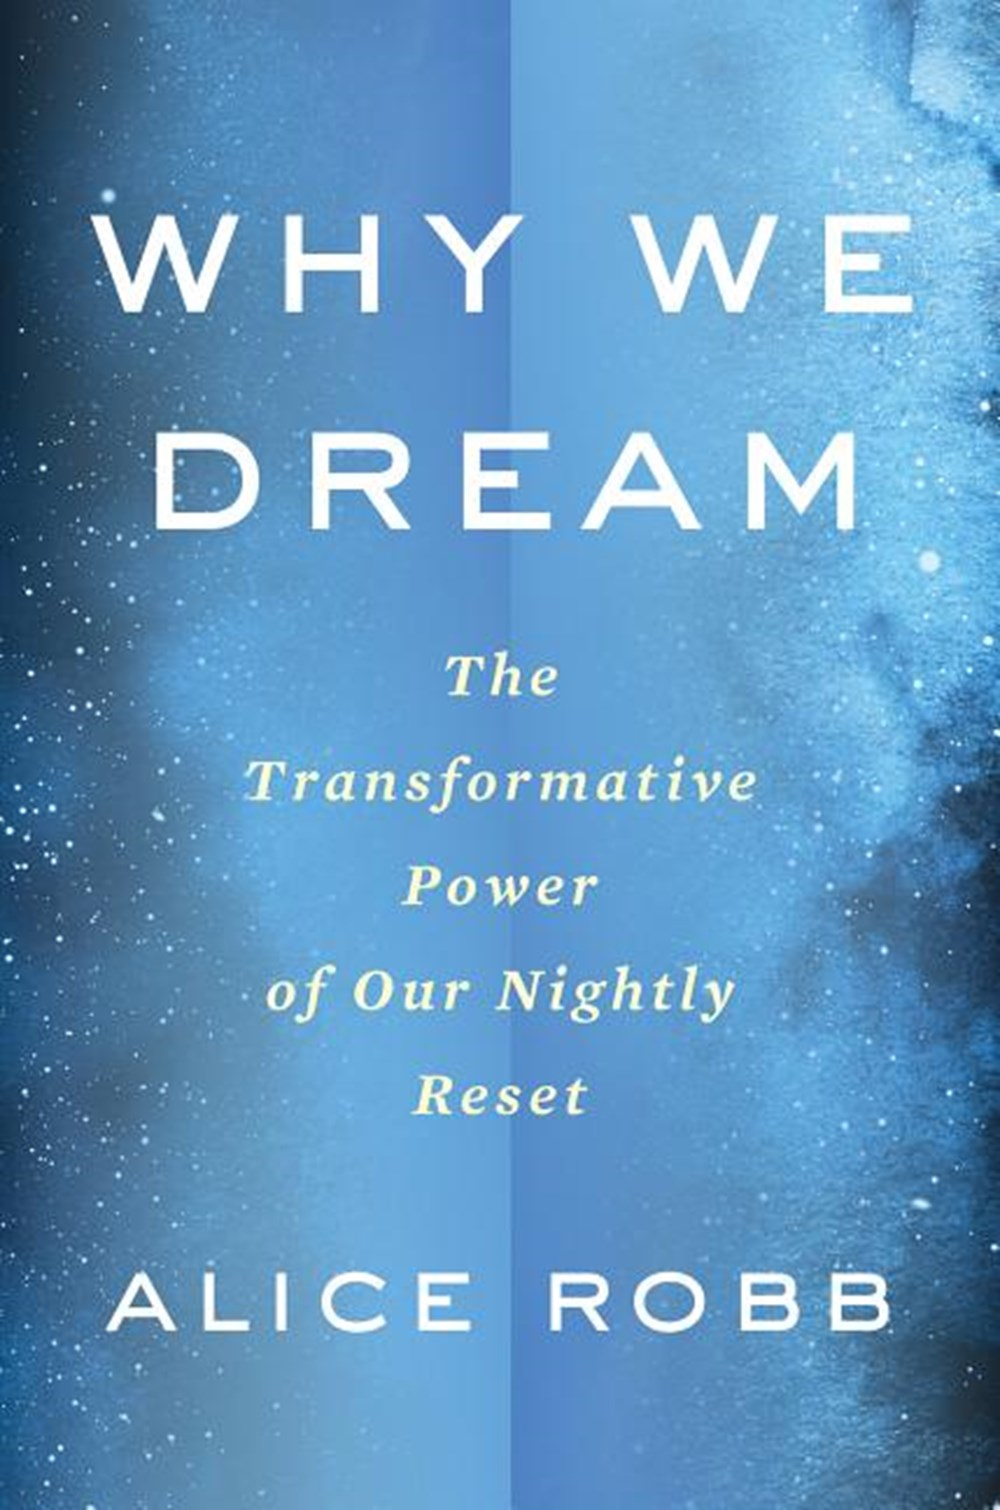 Why We Dream The Transformative Power of Our Nightly Journey